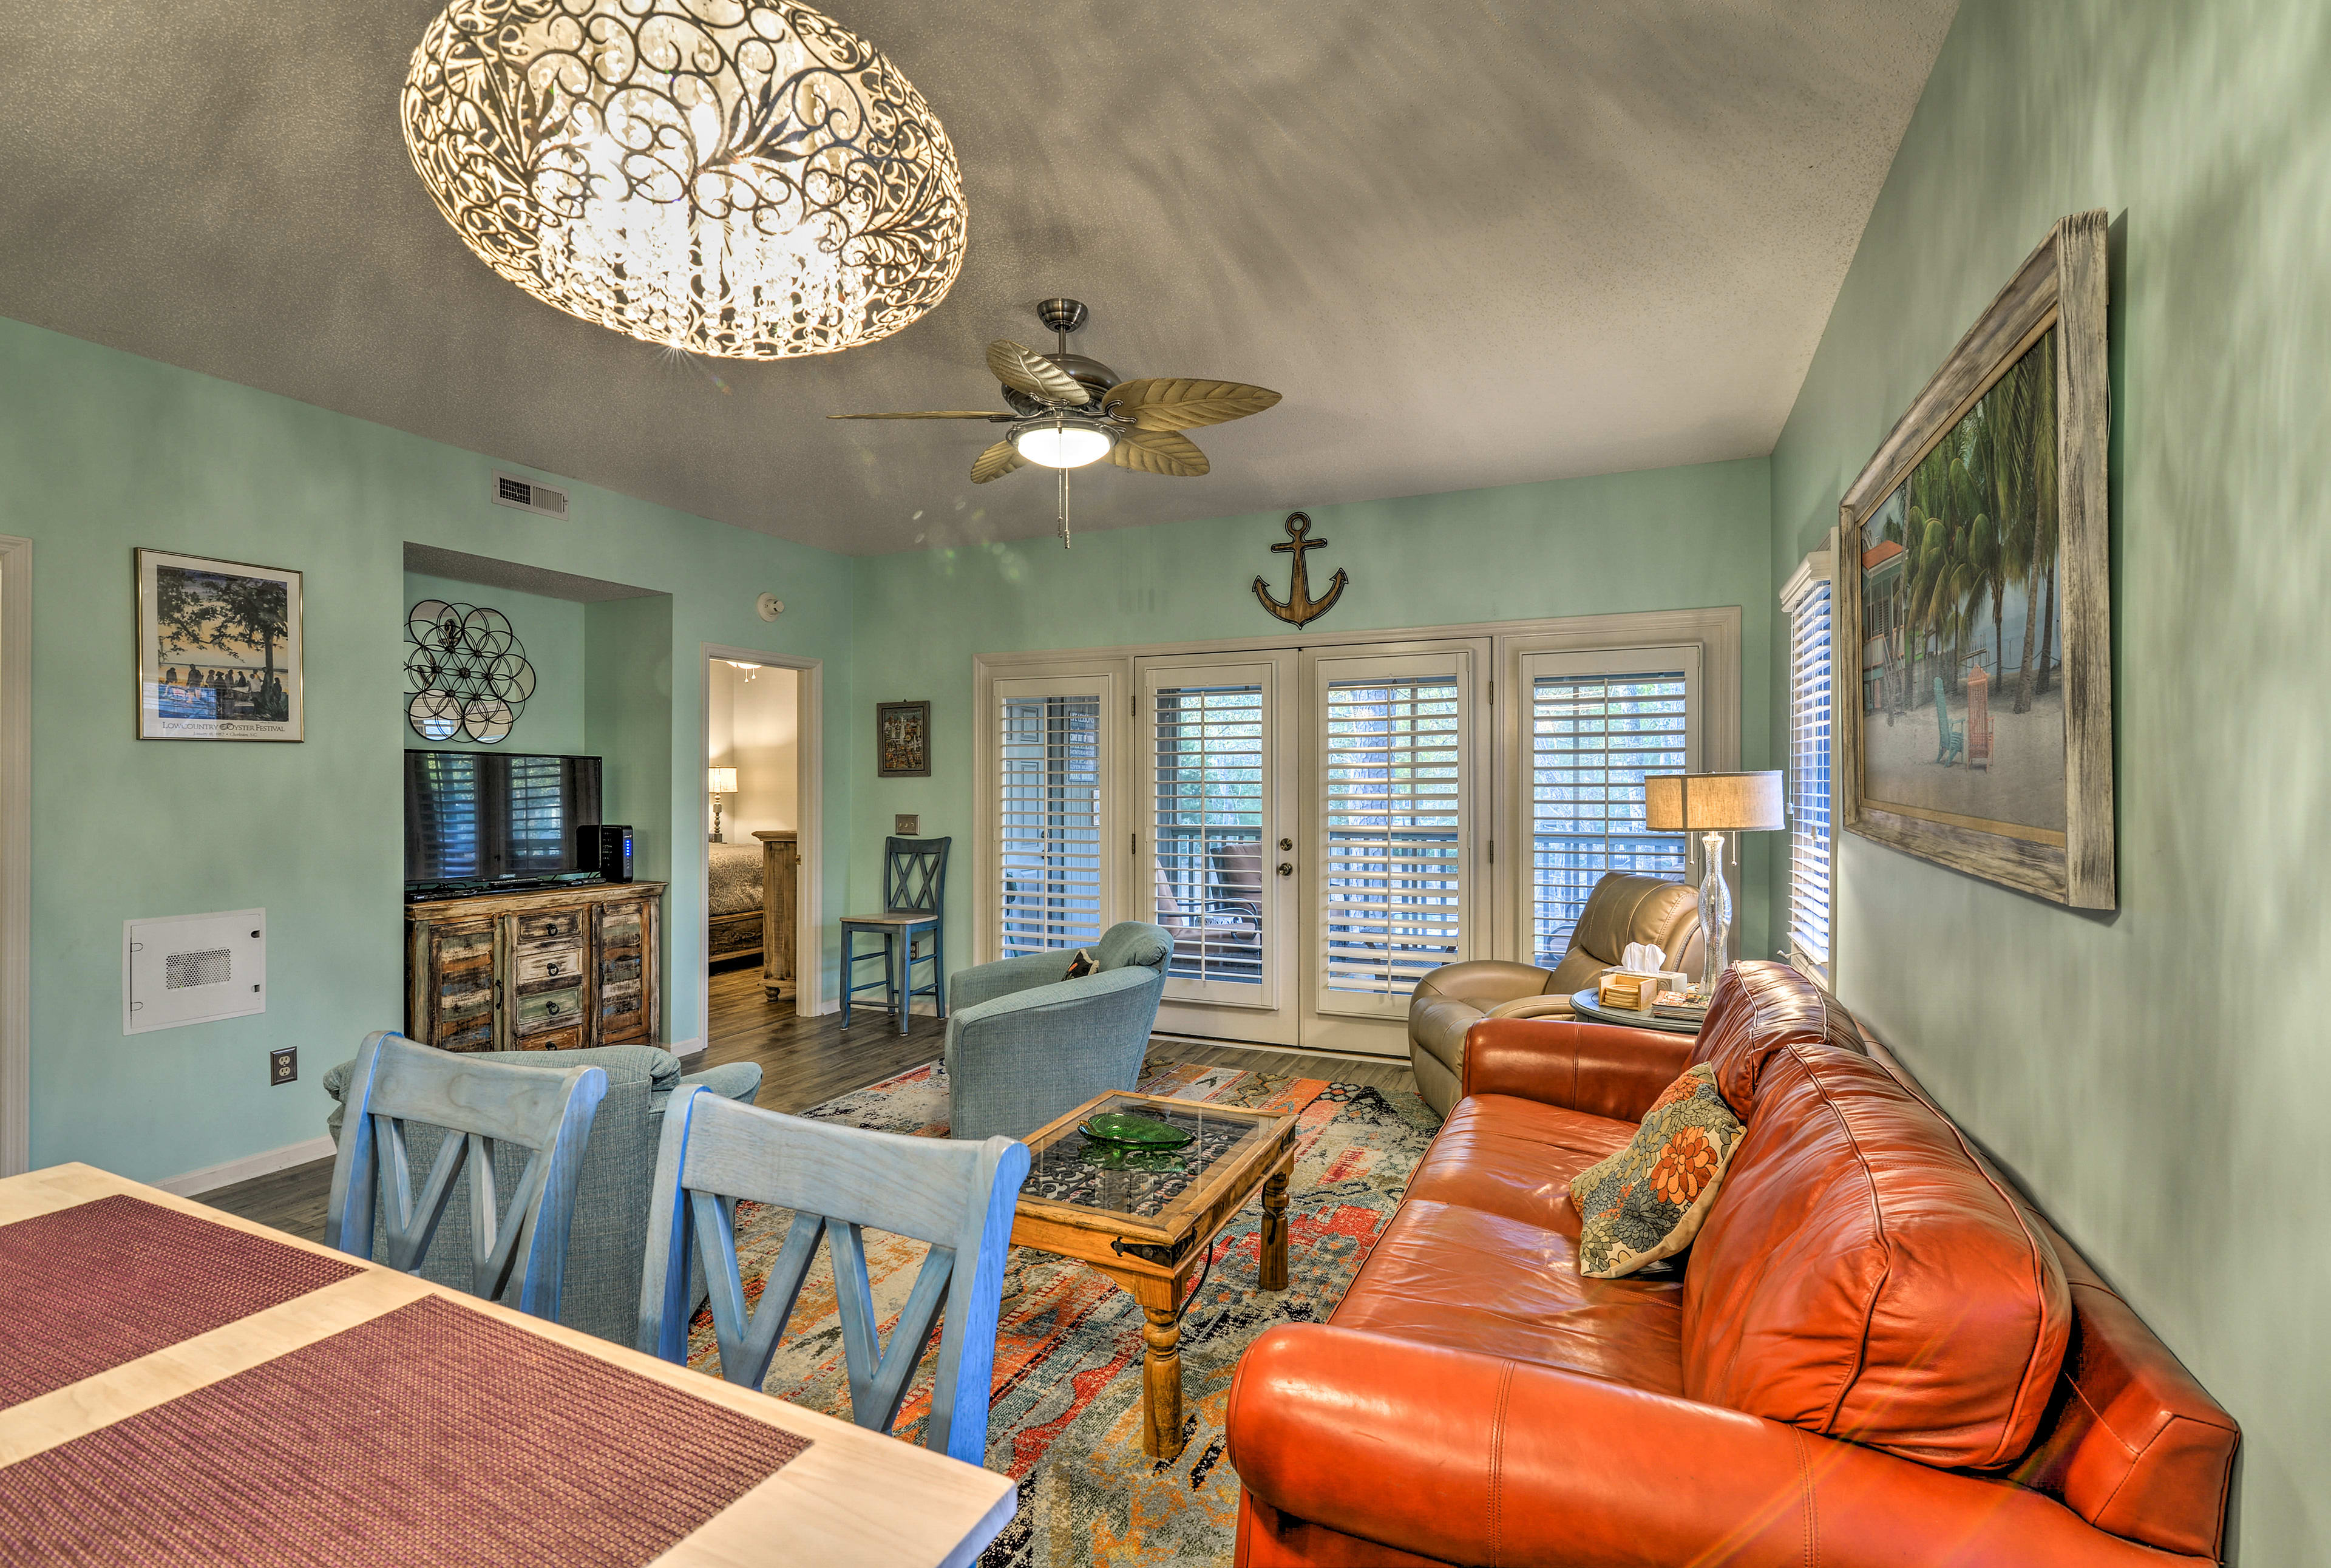 Bring 5 friends to this stunning, seaside sanctuary.